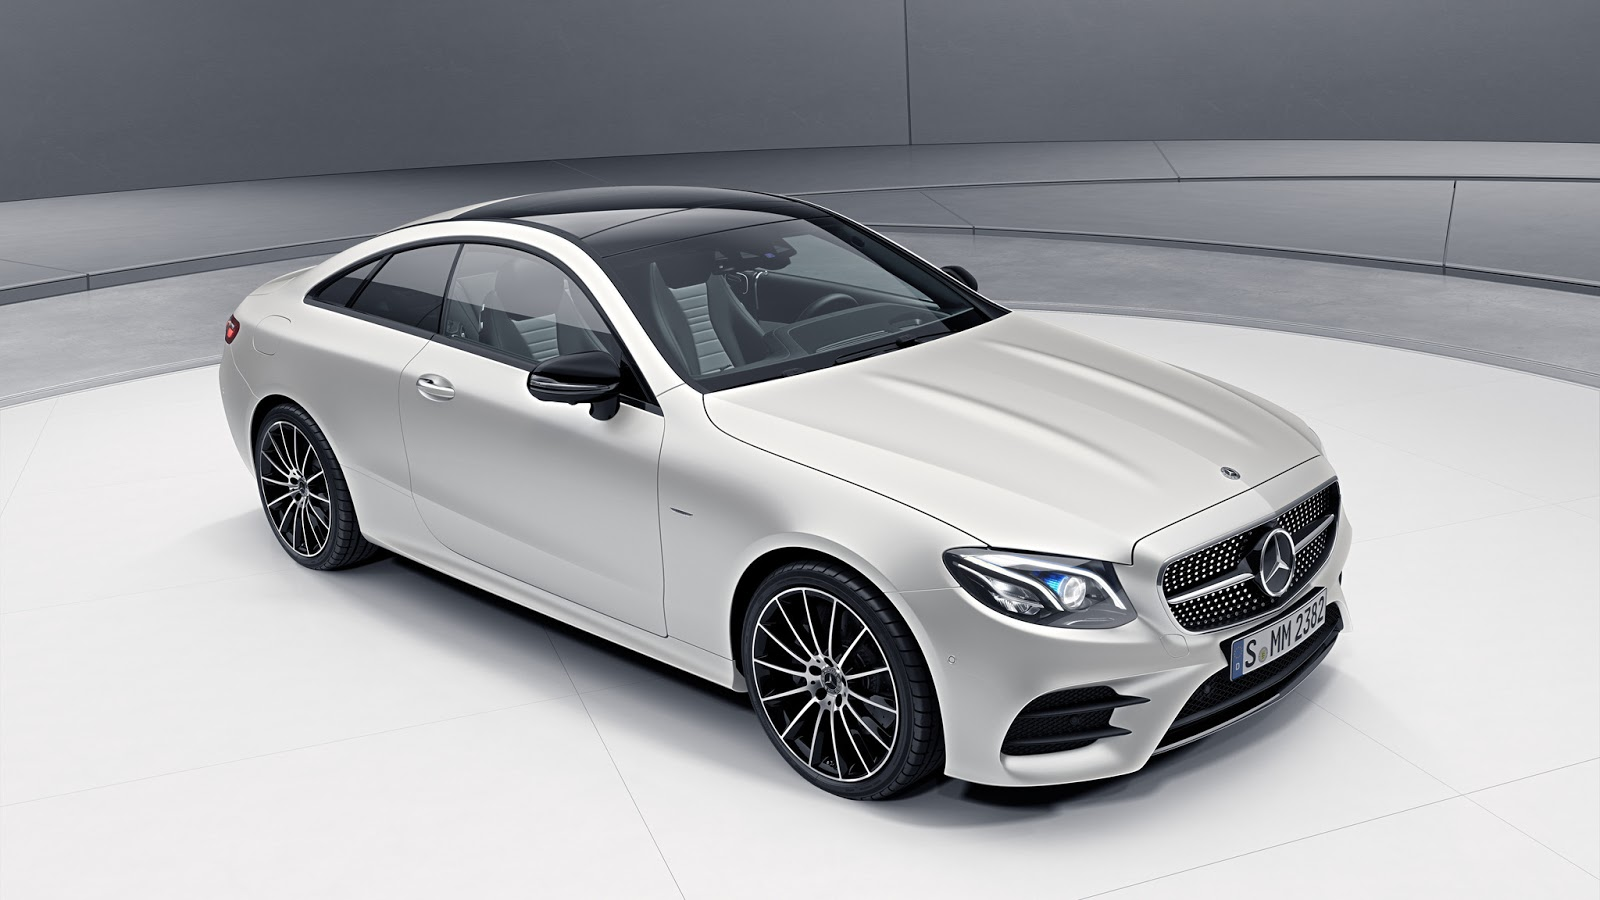 mercedes e class coupe edition 1 launch model limited to 555 units mercedesblog. Black Bedroom Furniture Sets. Home Design Ideas